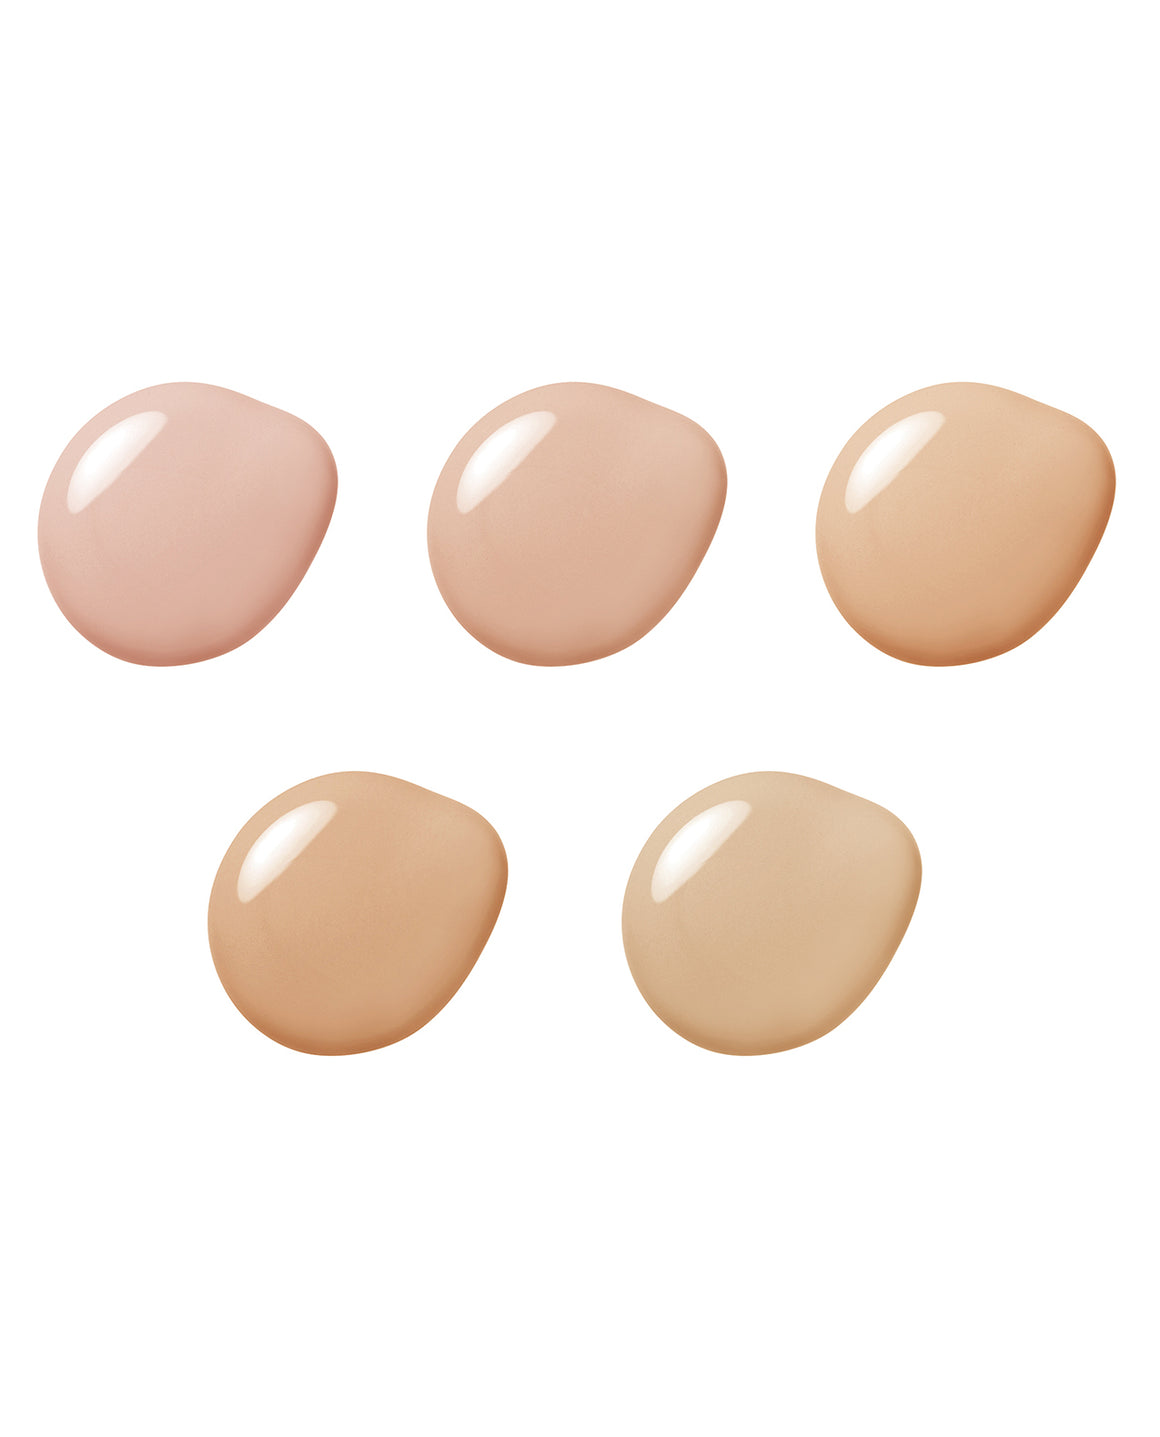 Aqua Foundation Sample Shades (Light - Medium)